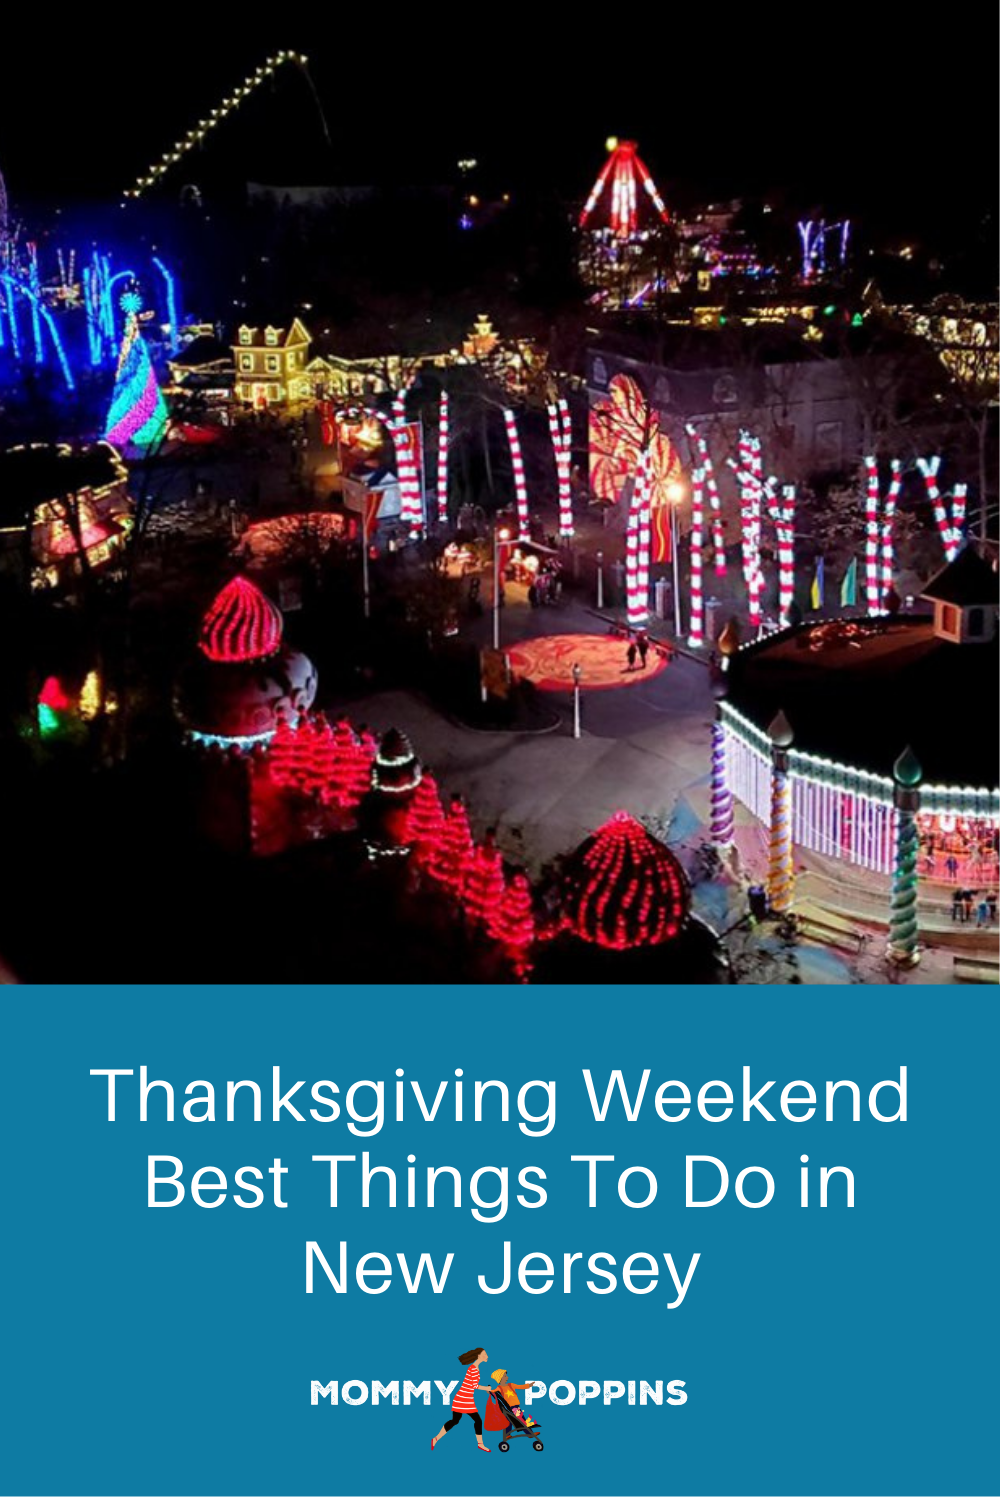 Thanksgiving Weekend Best Things To Do In Nj With Kids Mommy Poppins Things To Do With Kids Kids Things To Do Six Flags Great Adventure Things To Do